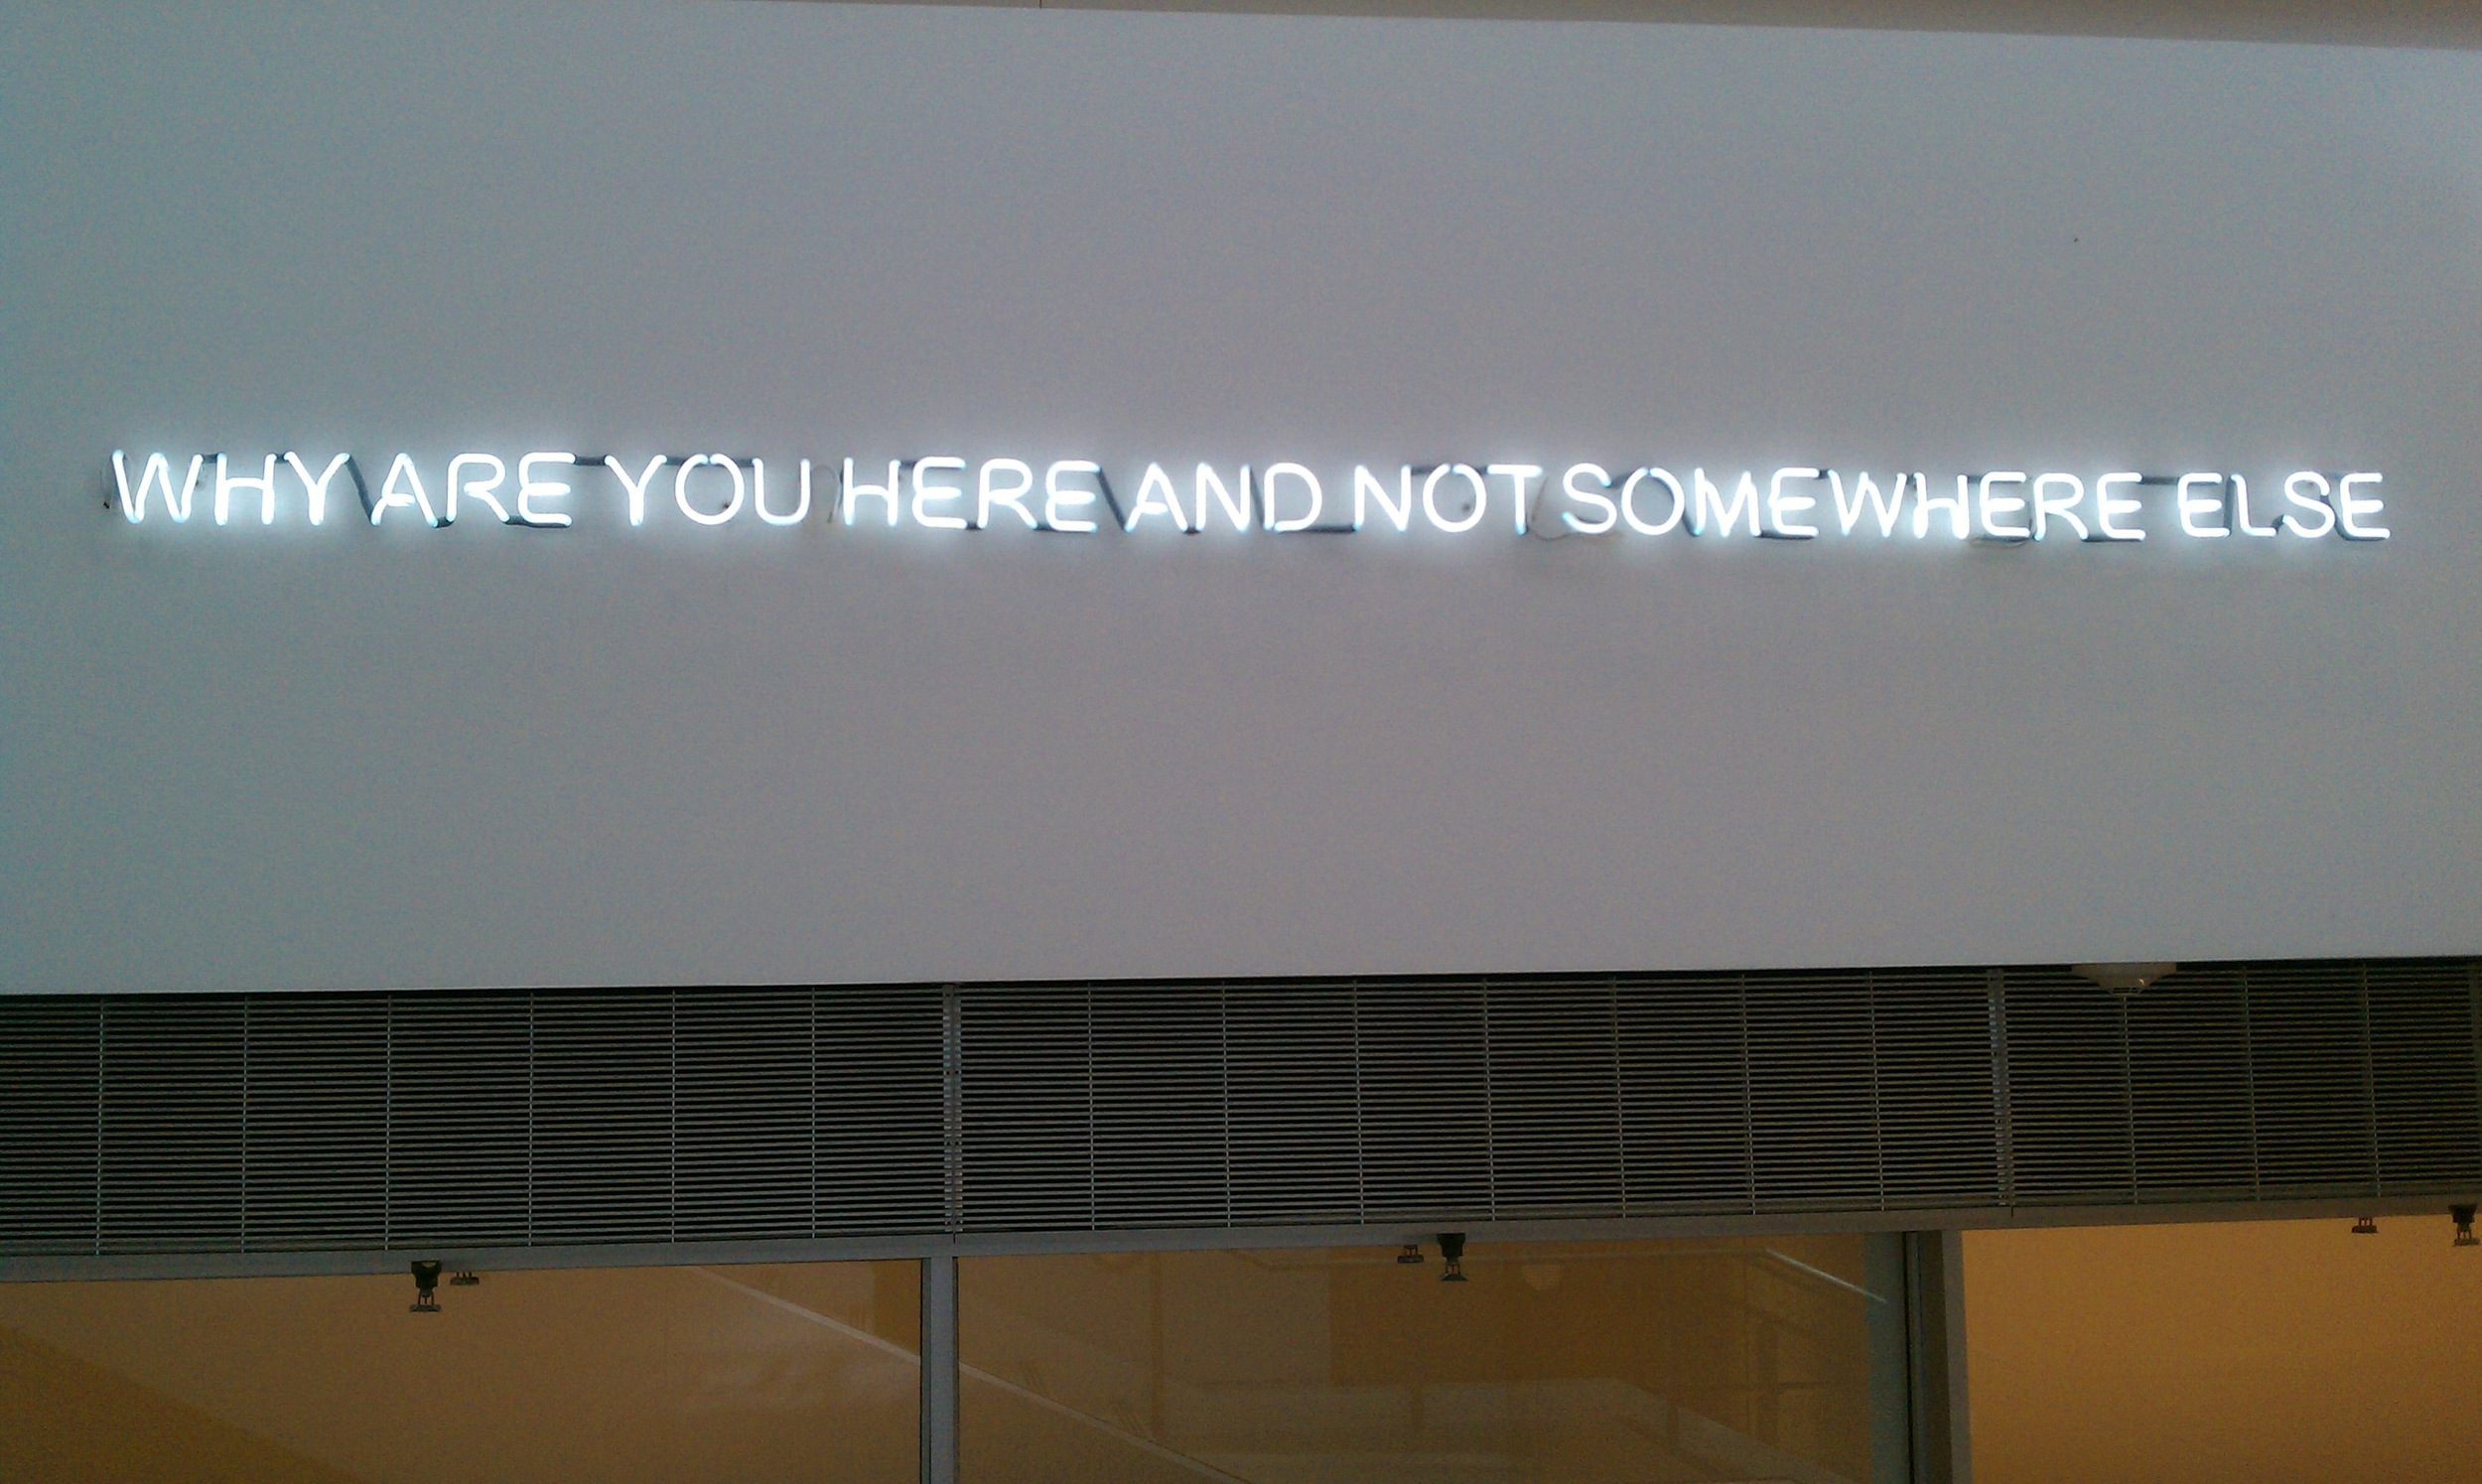 """""""Why are you here and not somewhere else"""" by Quinn Dombrowski under CC BY-SA 2.0"""